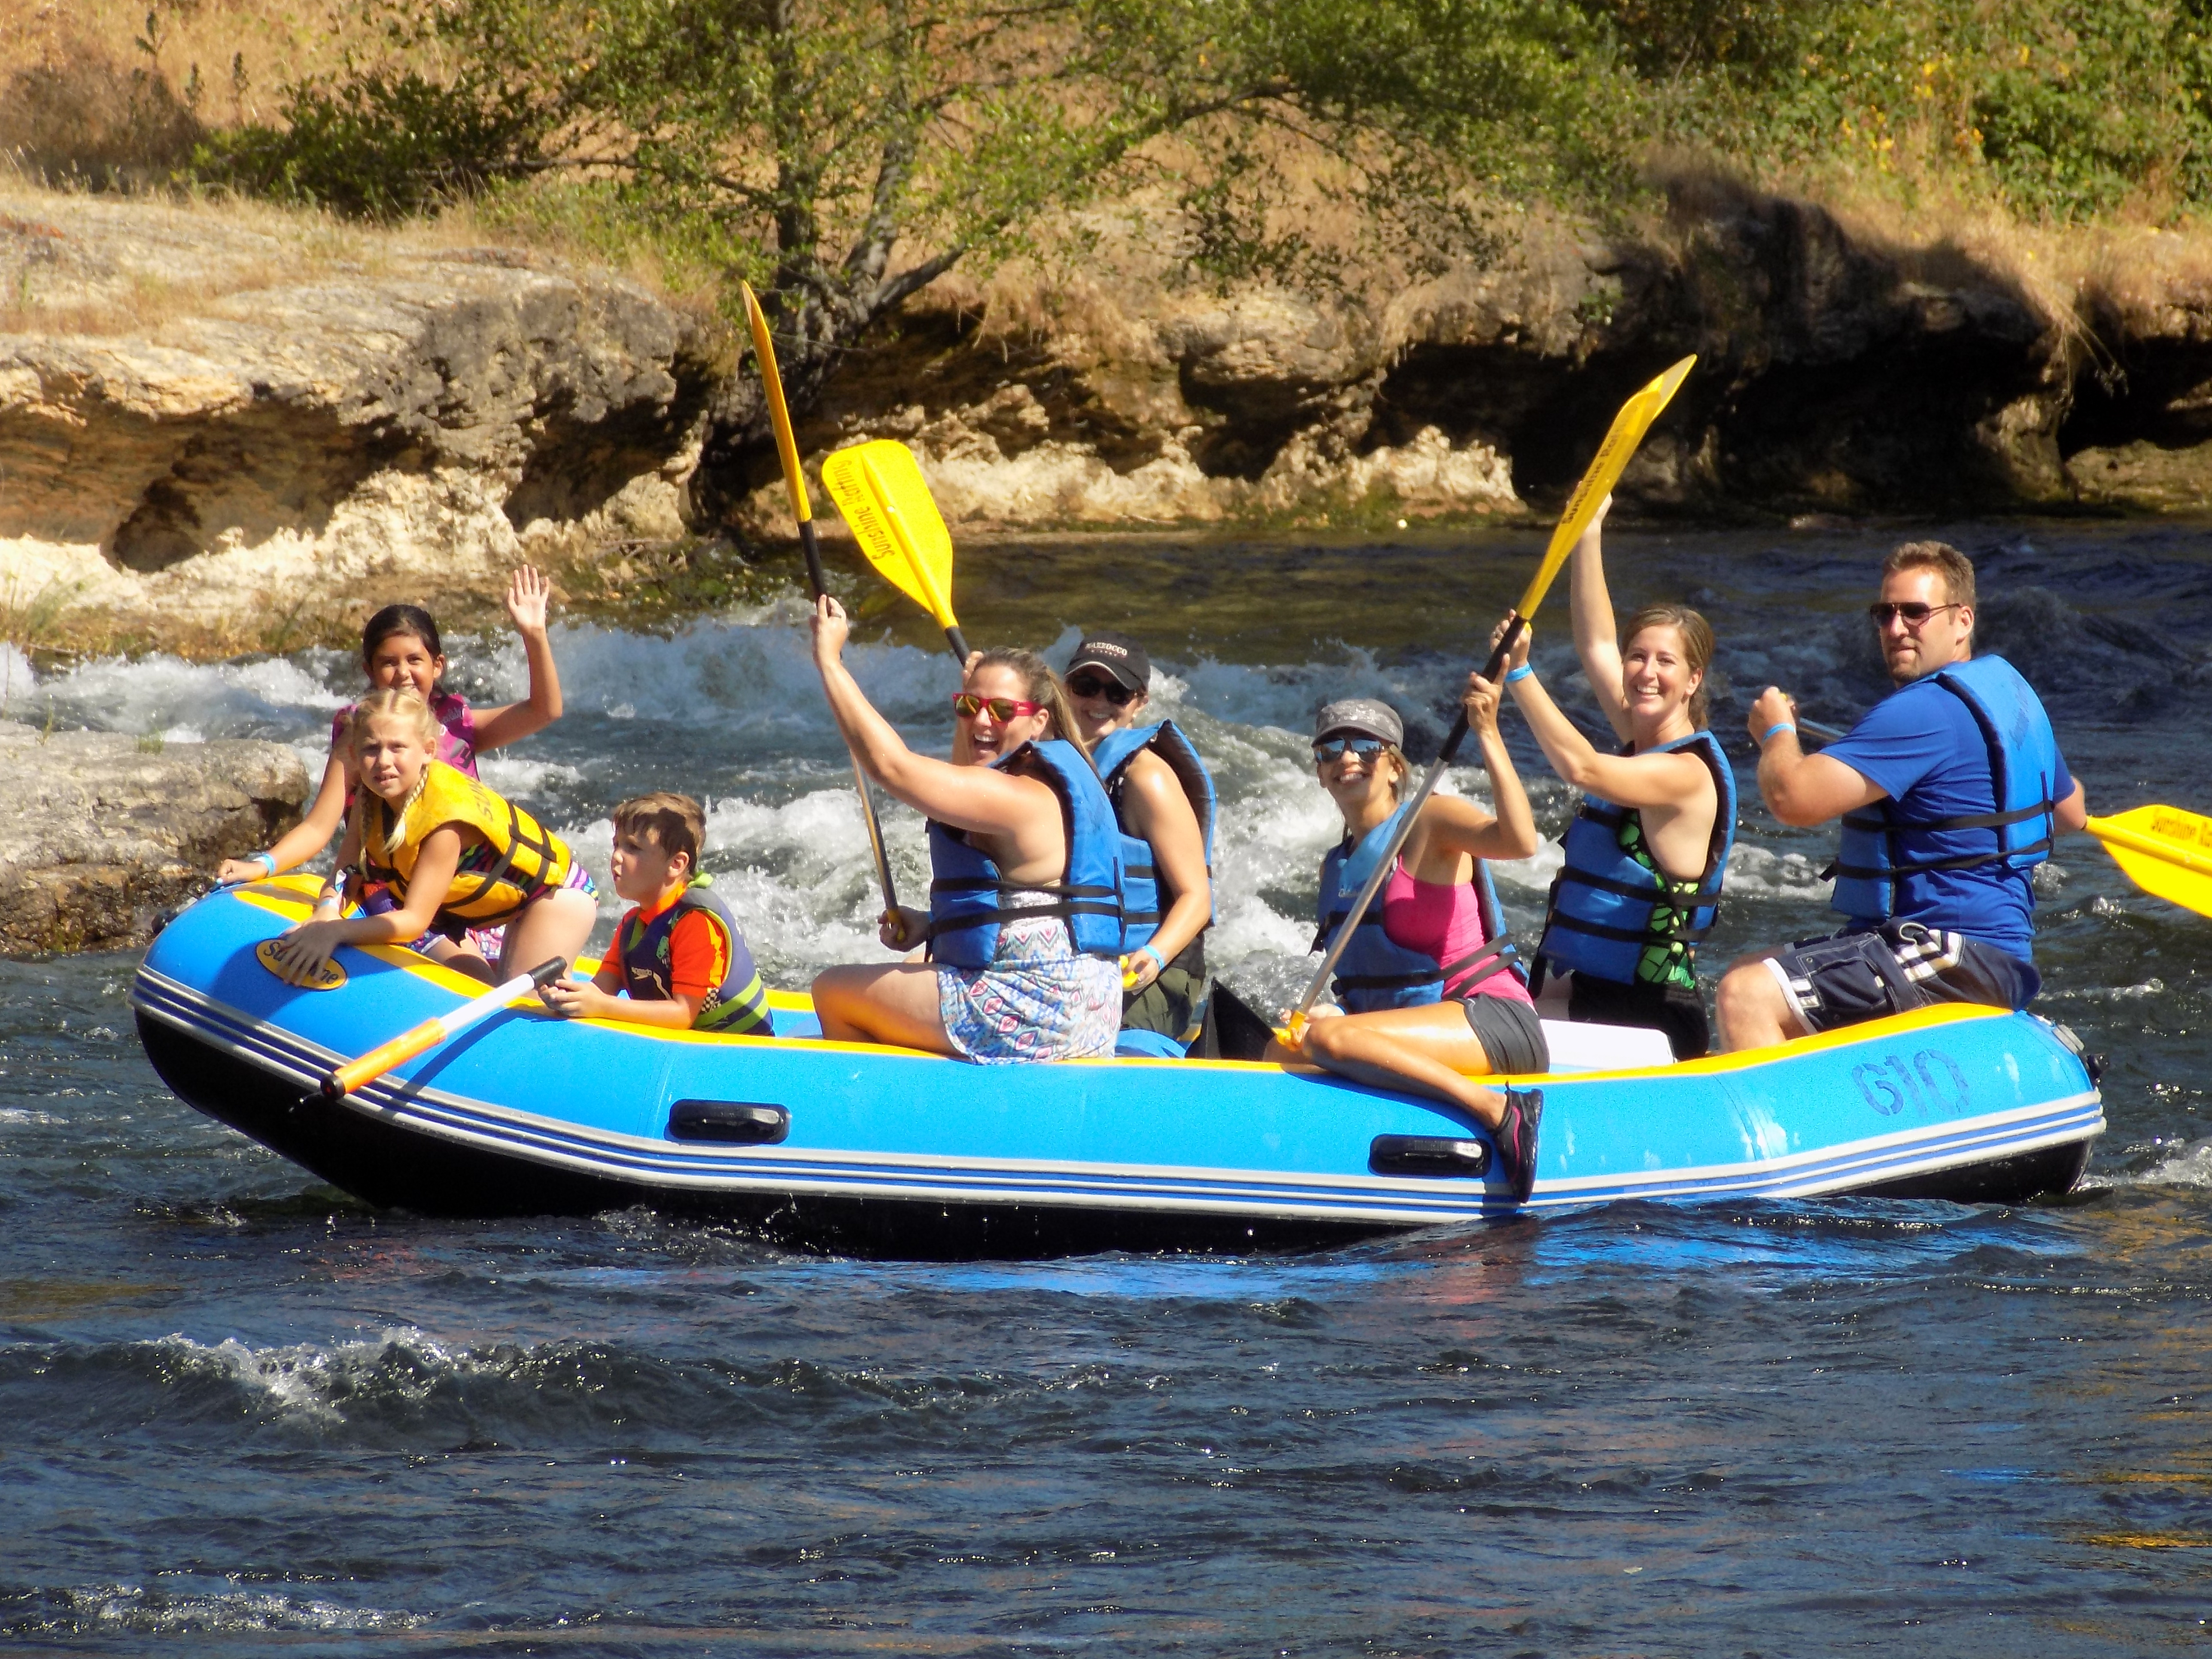 Alive and Laughing, Rafting on the Stanislaus